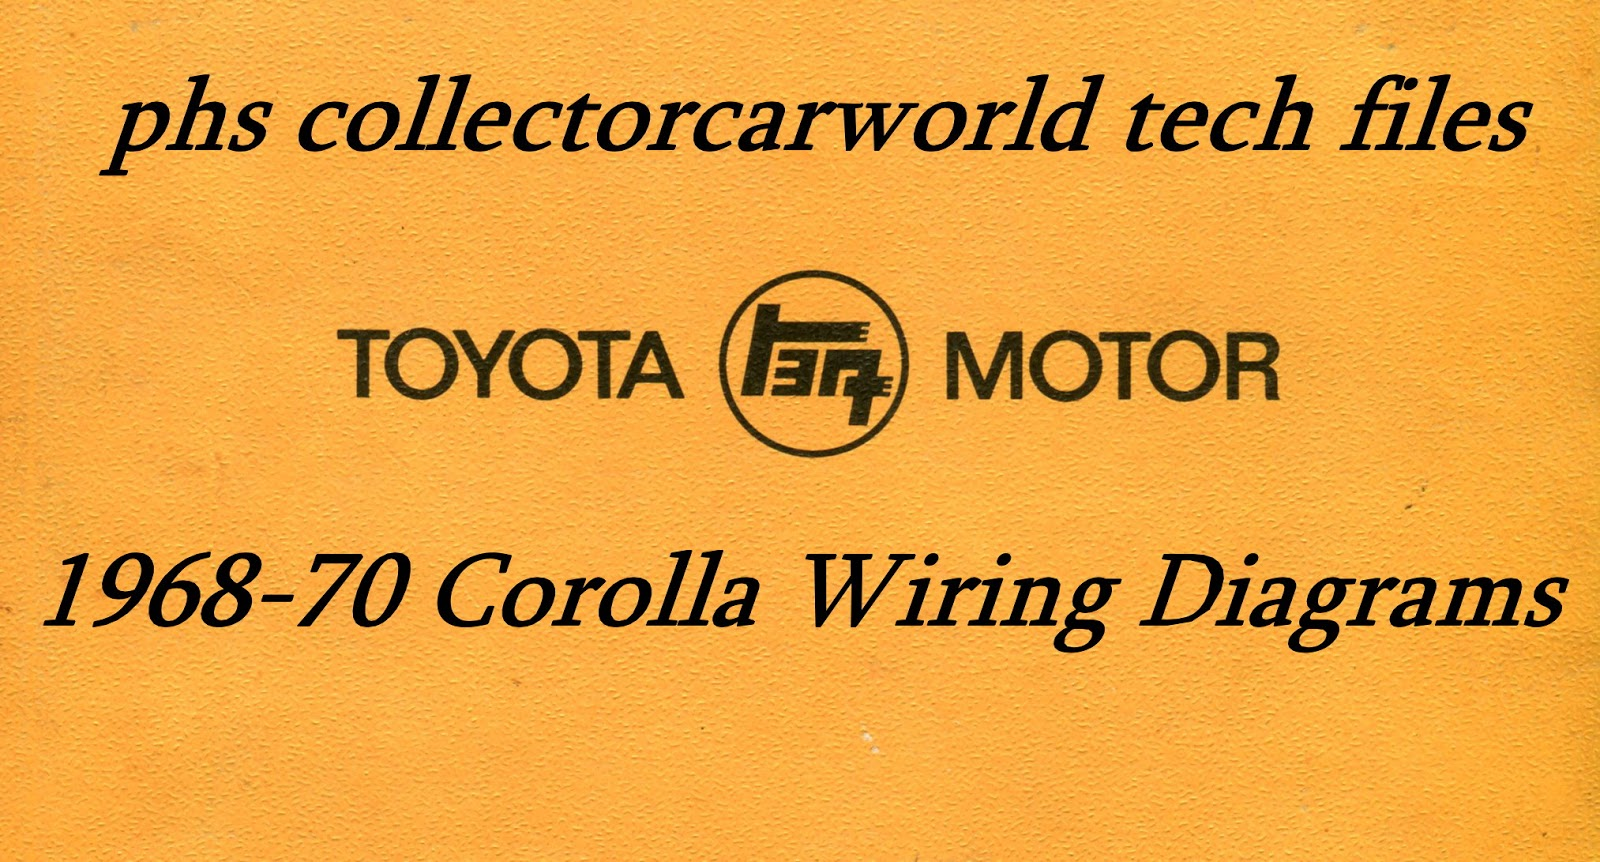 hight resolution of for this installment of tech series we present the complete wiring schematics for the 1968 1970 toyota corolla vehicles in the ke and te series from april